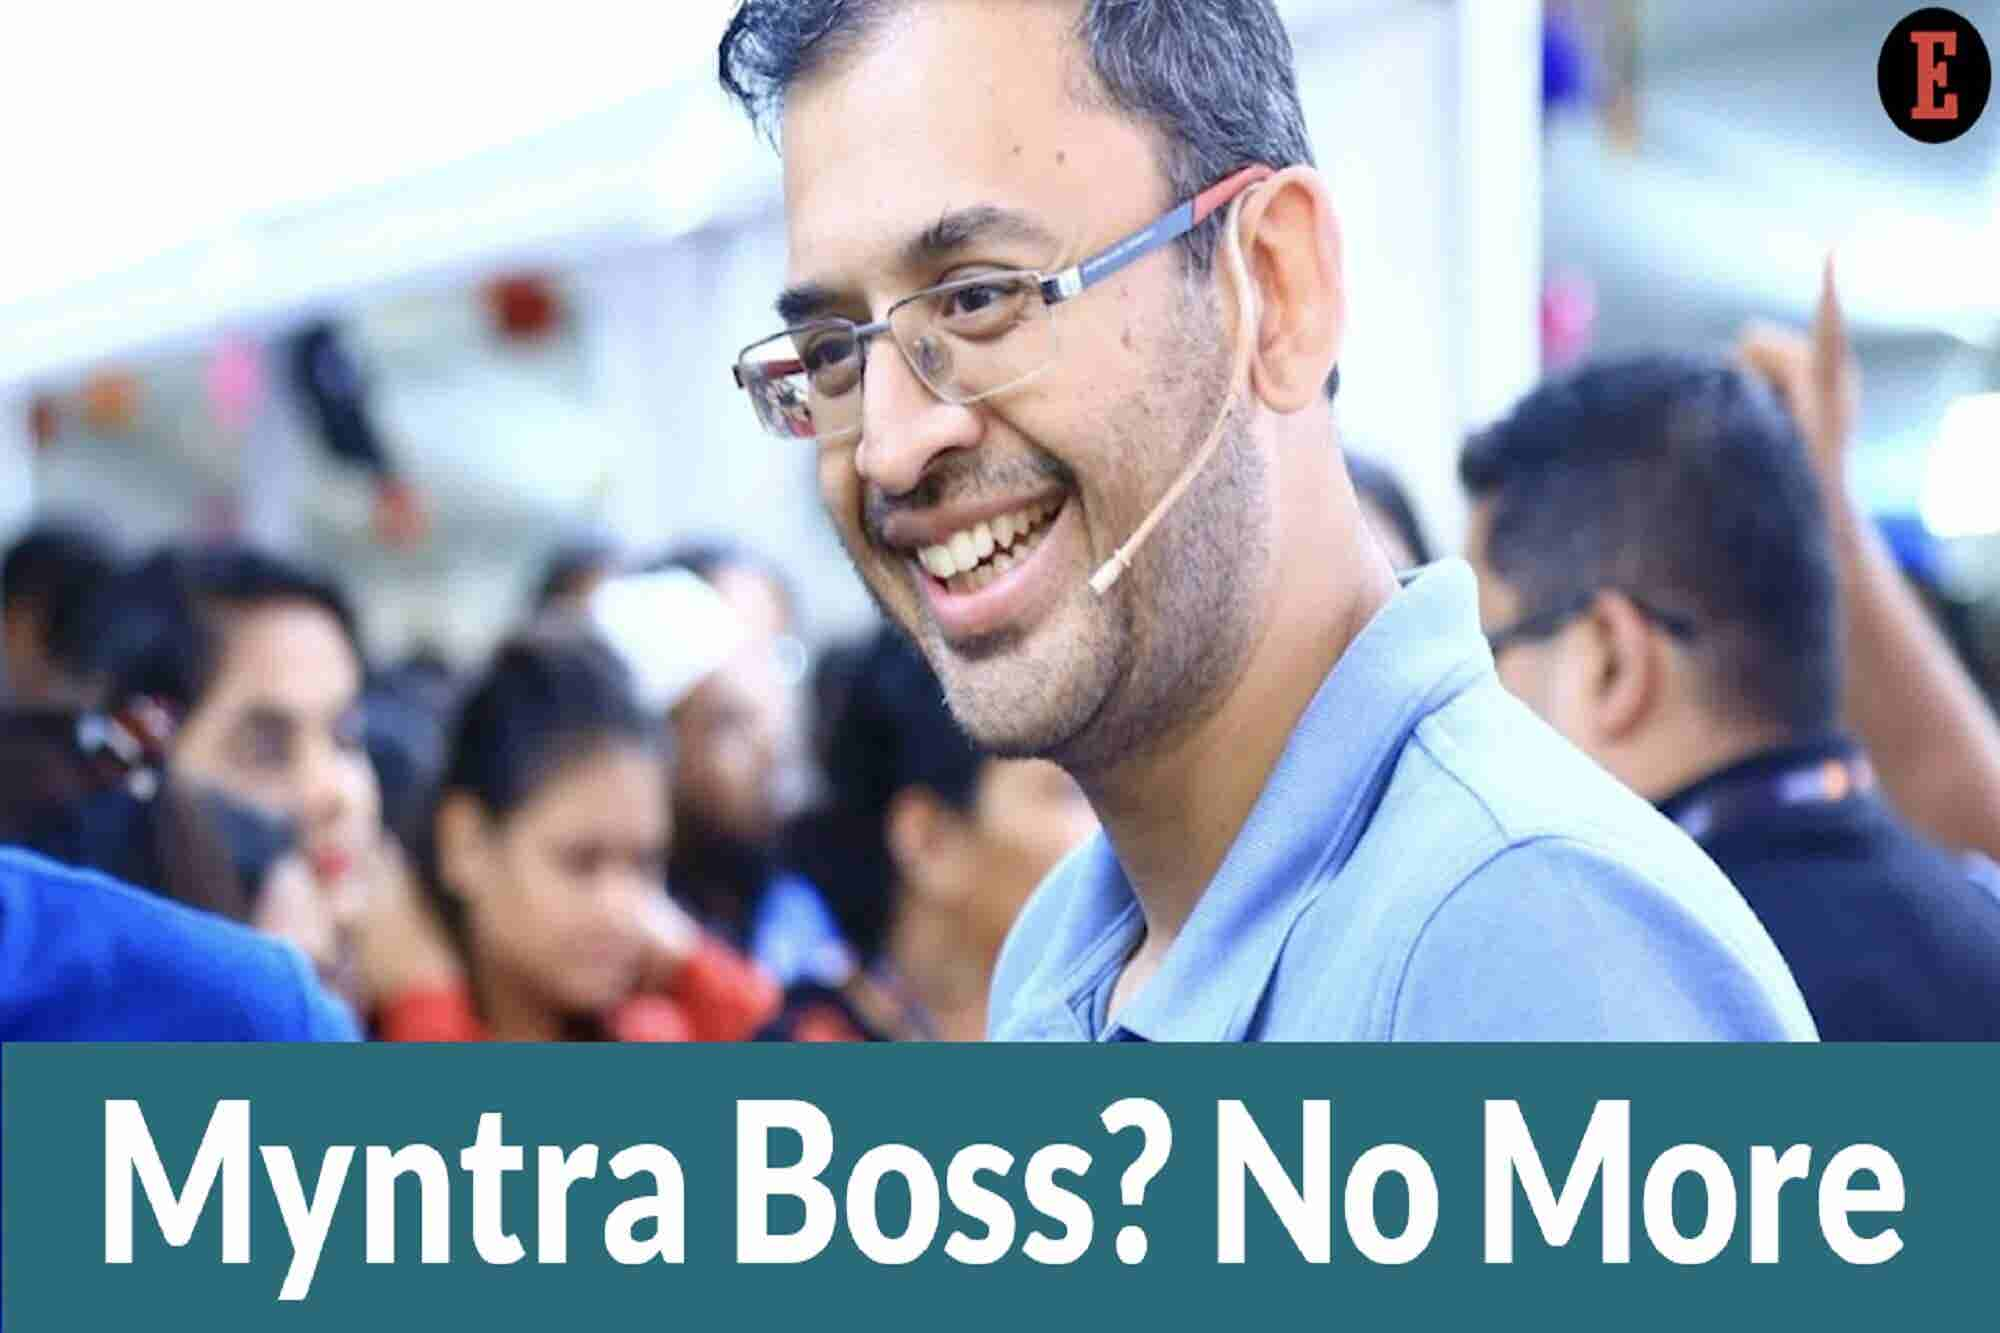 Week Wrap Up: From Myntra CEO's Resignation to Binny Bansal's Comeback Plan, Here's All You Need to Know